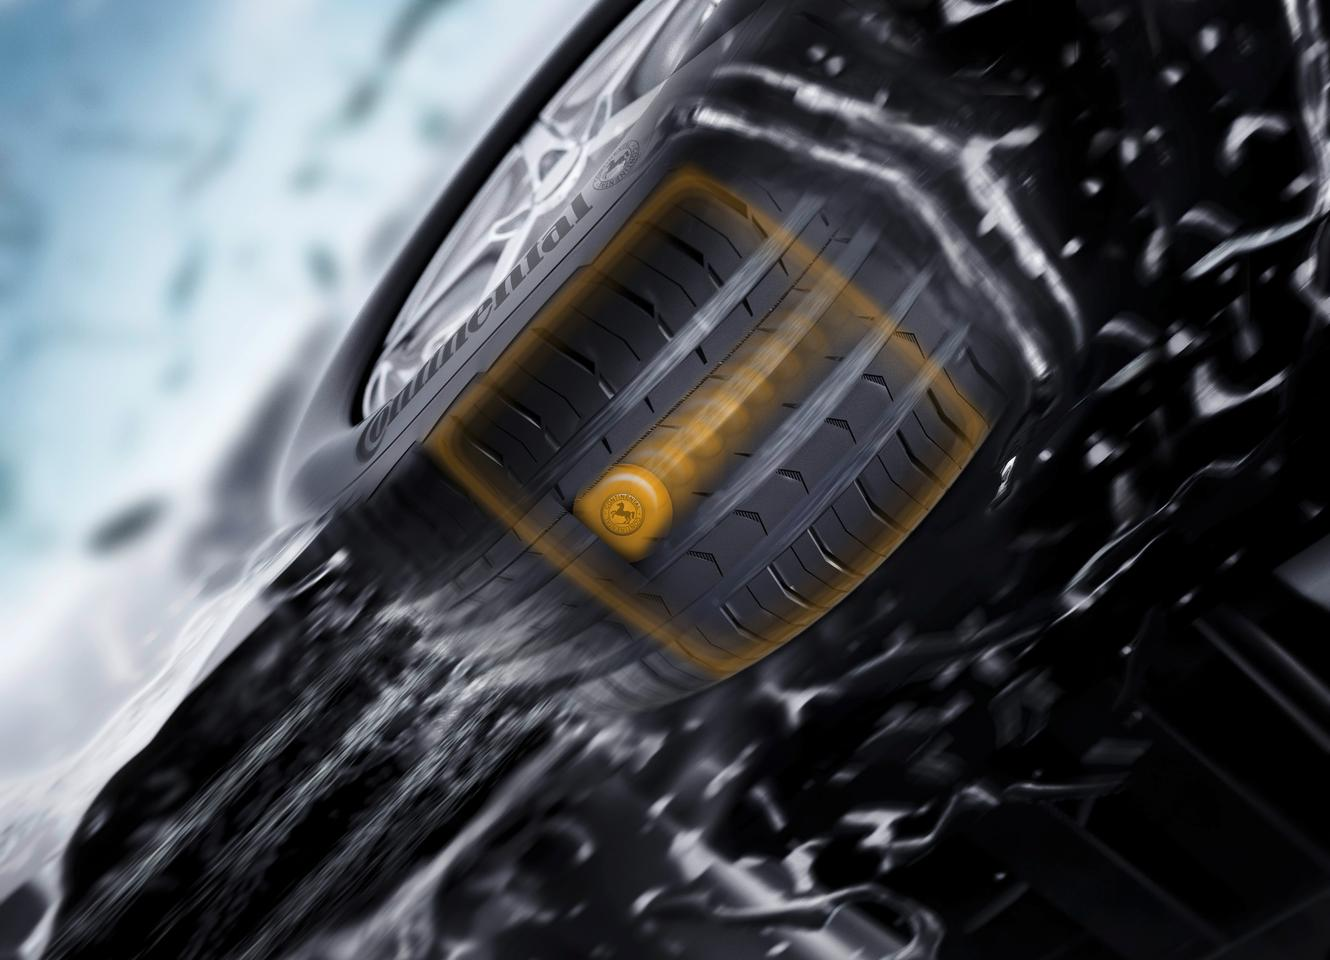 Continental says its future generation tire sensors will accurately detect the size of contact area and calculate the vehicle load